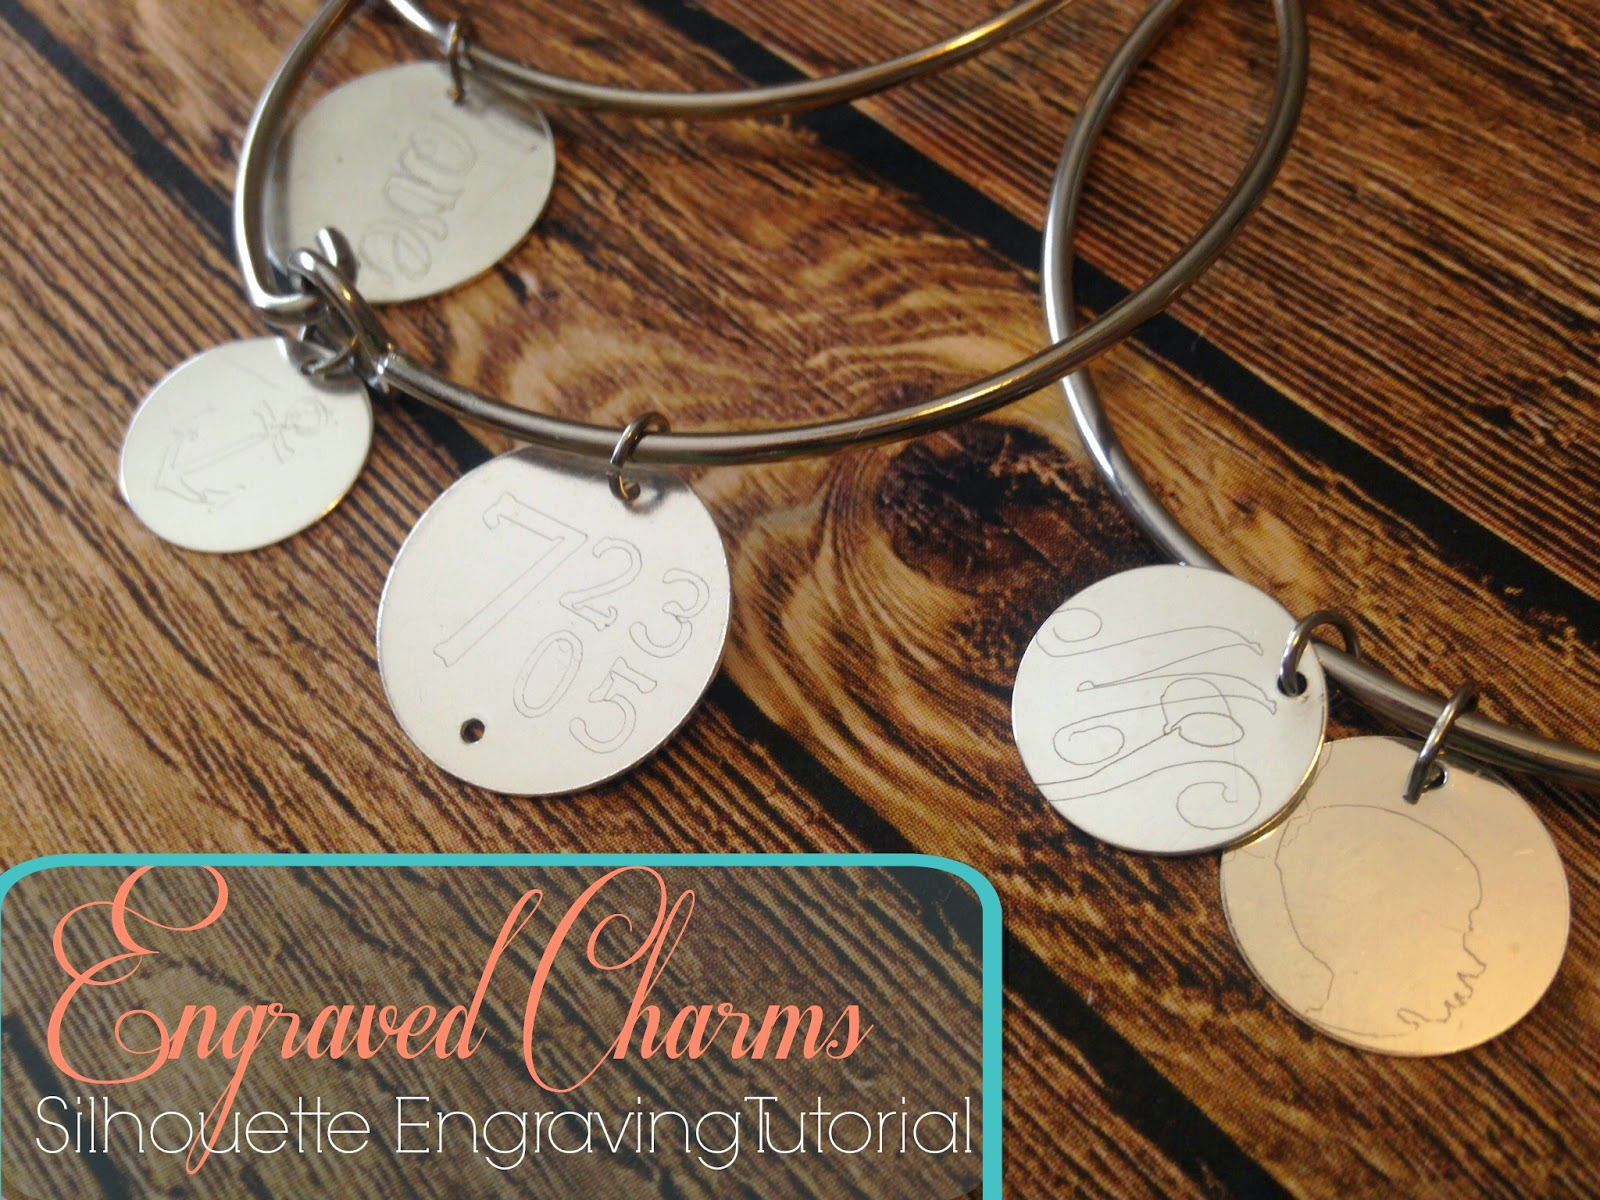 Engraving, Silhouette, Silhouette tutorial, tips